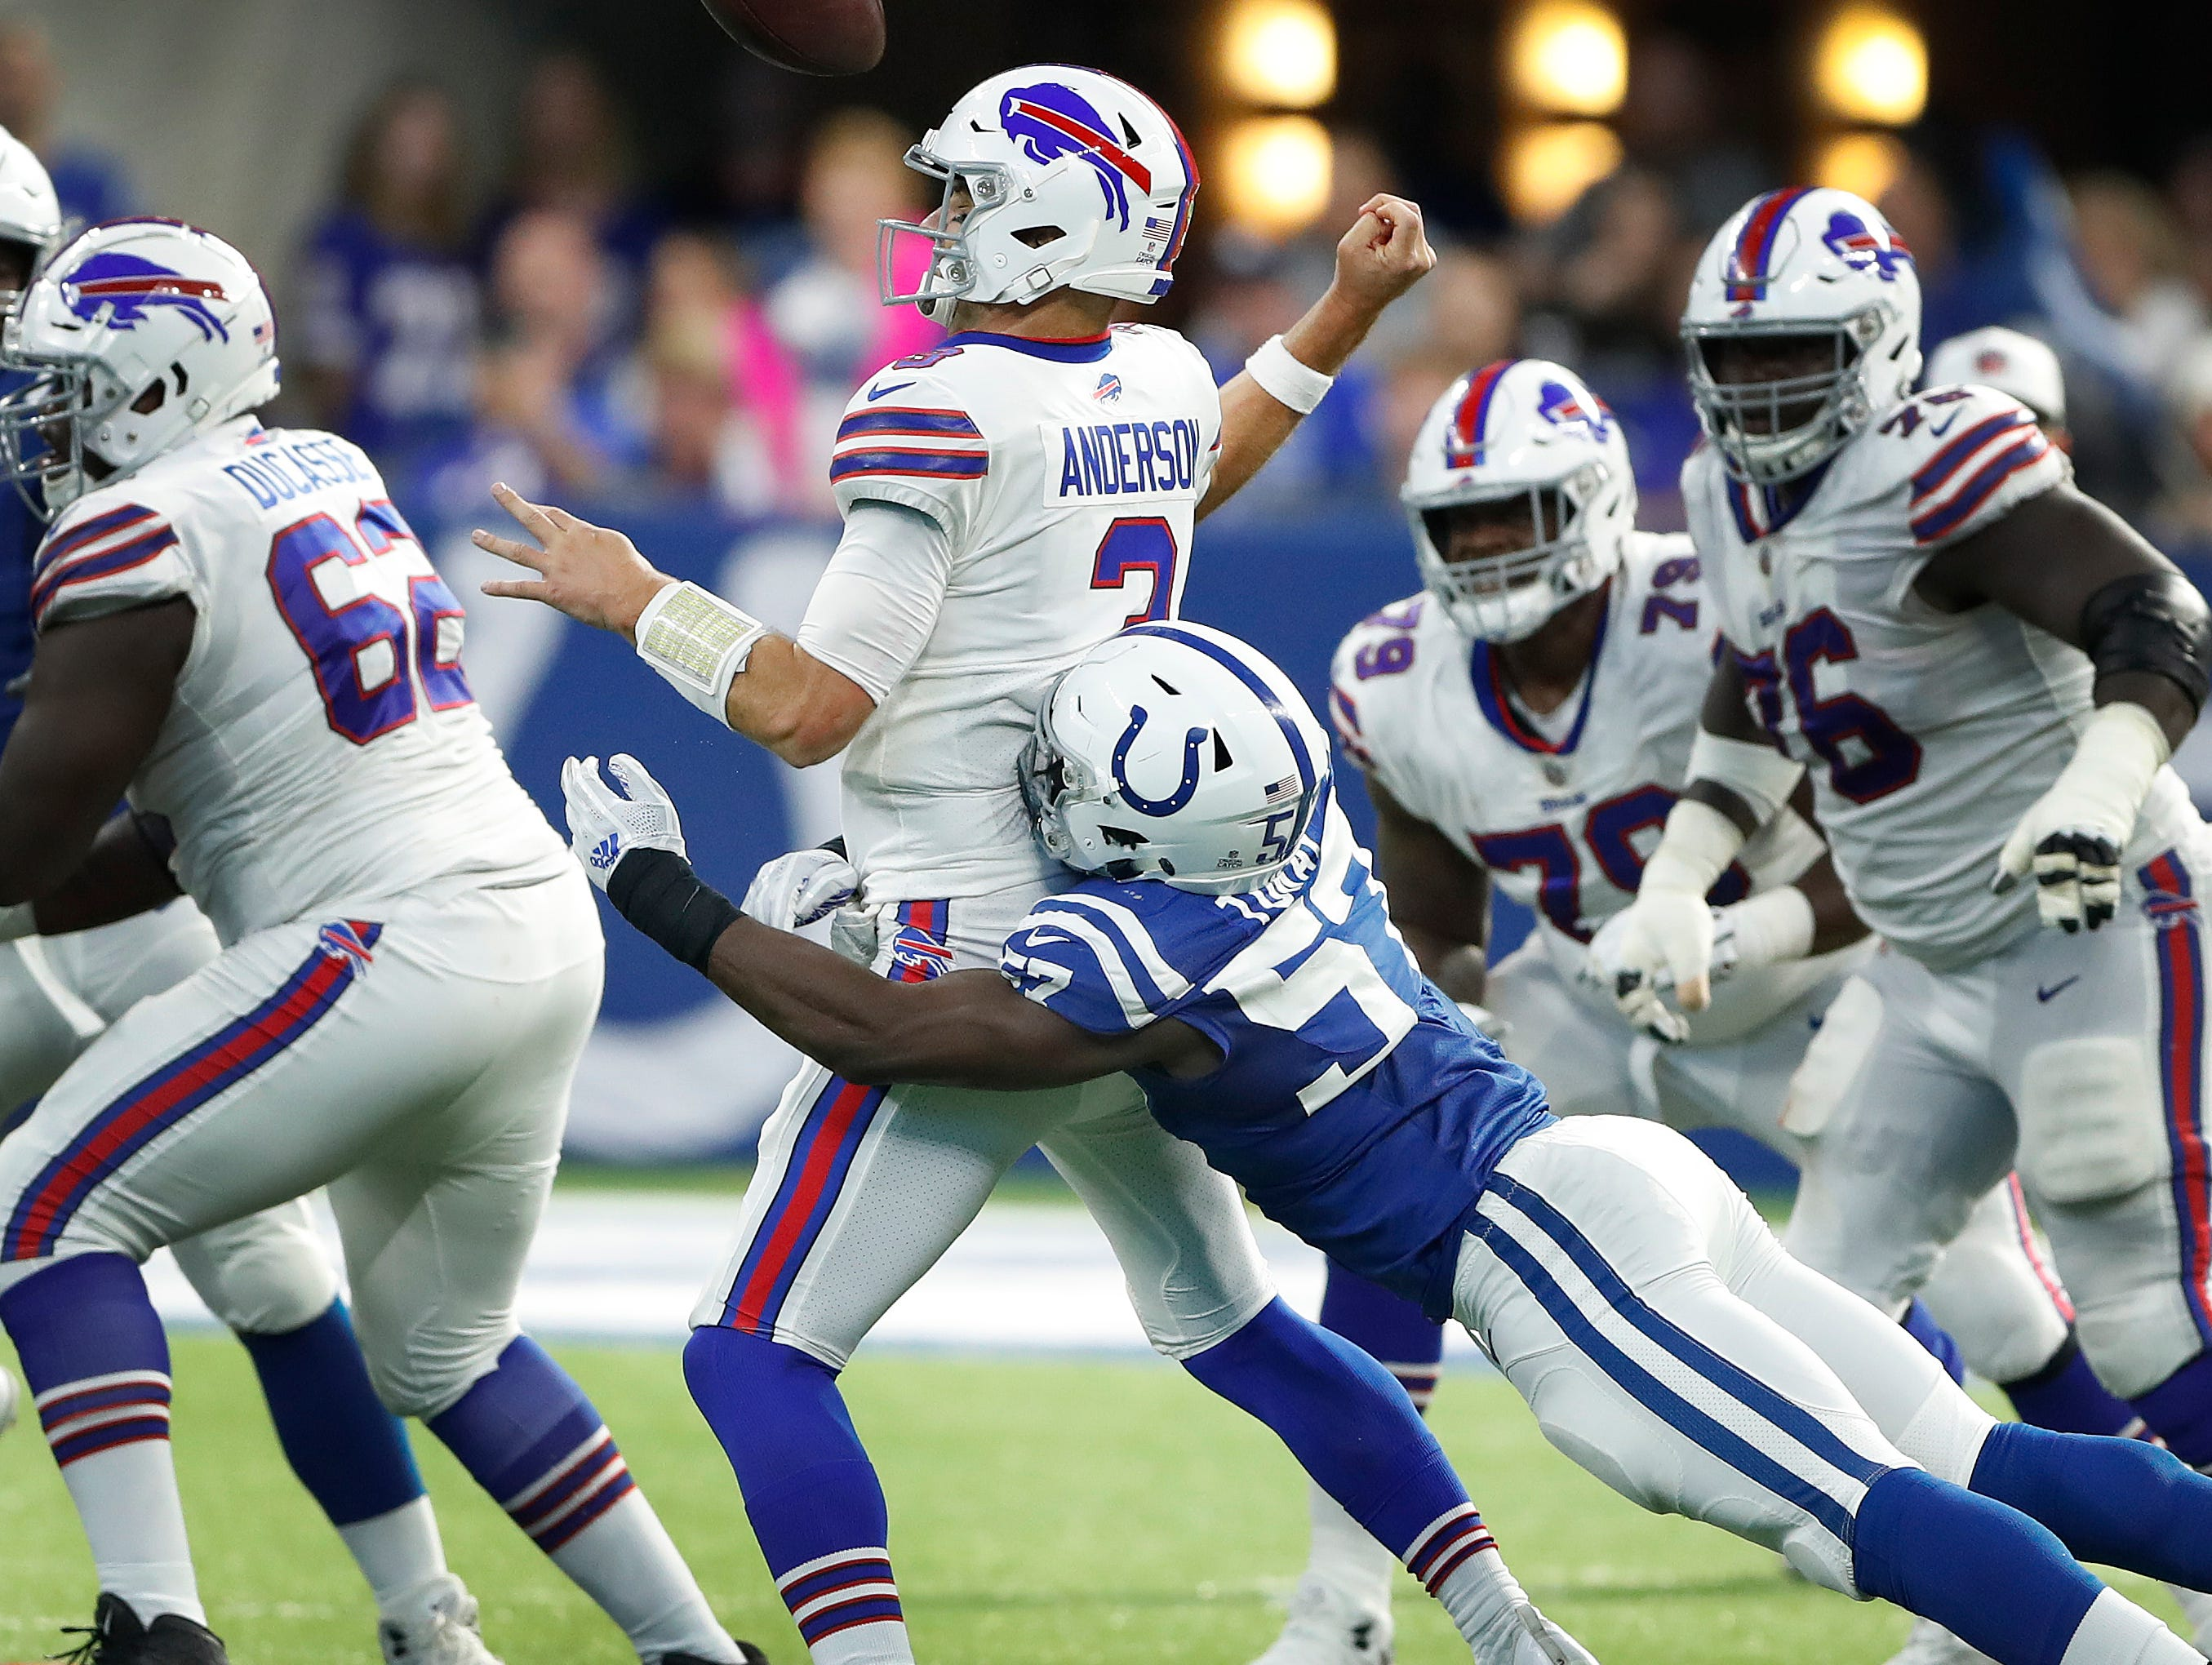 Indianapolis Colts defensive end Kemoko Turay (57) strip sacks Buffalo Bills quarterback Derek Anderson (3) in the second half of their game against the Buffalo Bills on Sunday, Oct 21, 2018. The Colts defeated the Bills 37-5.